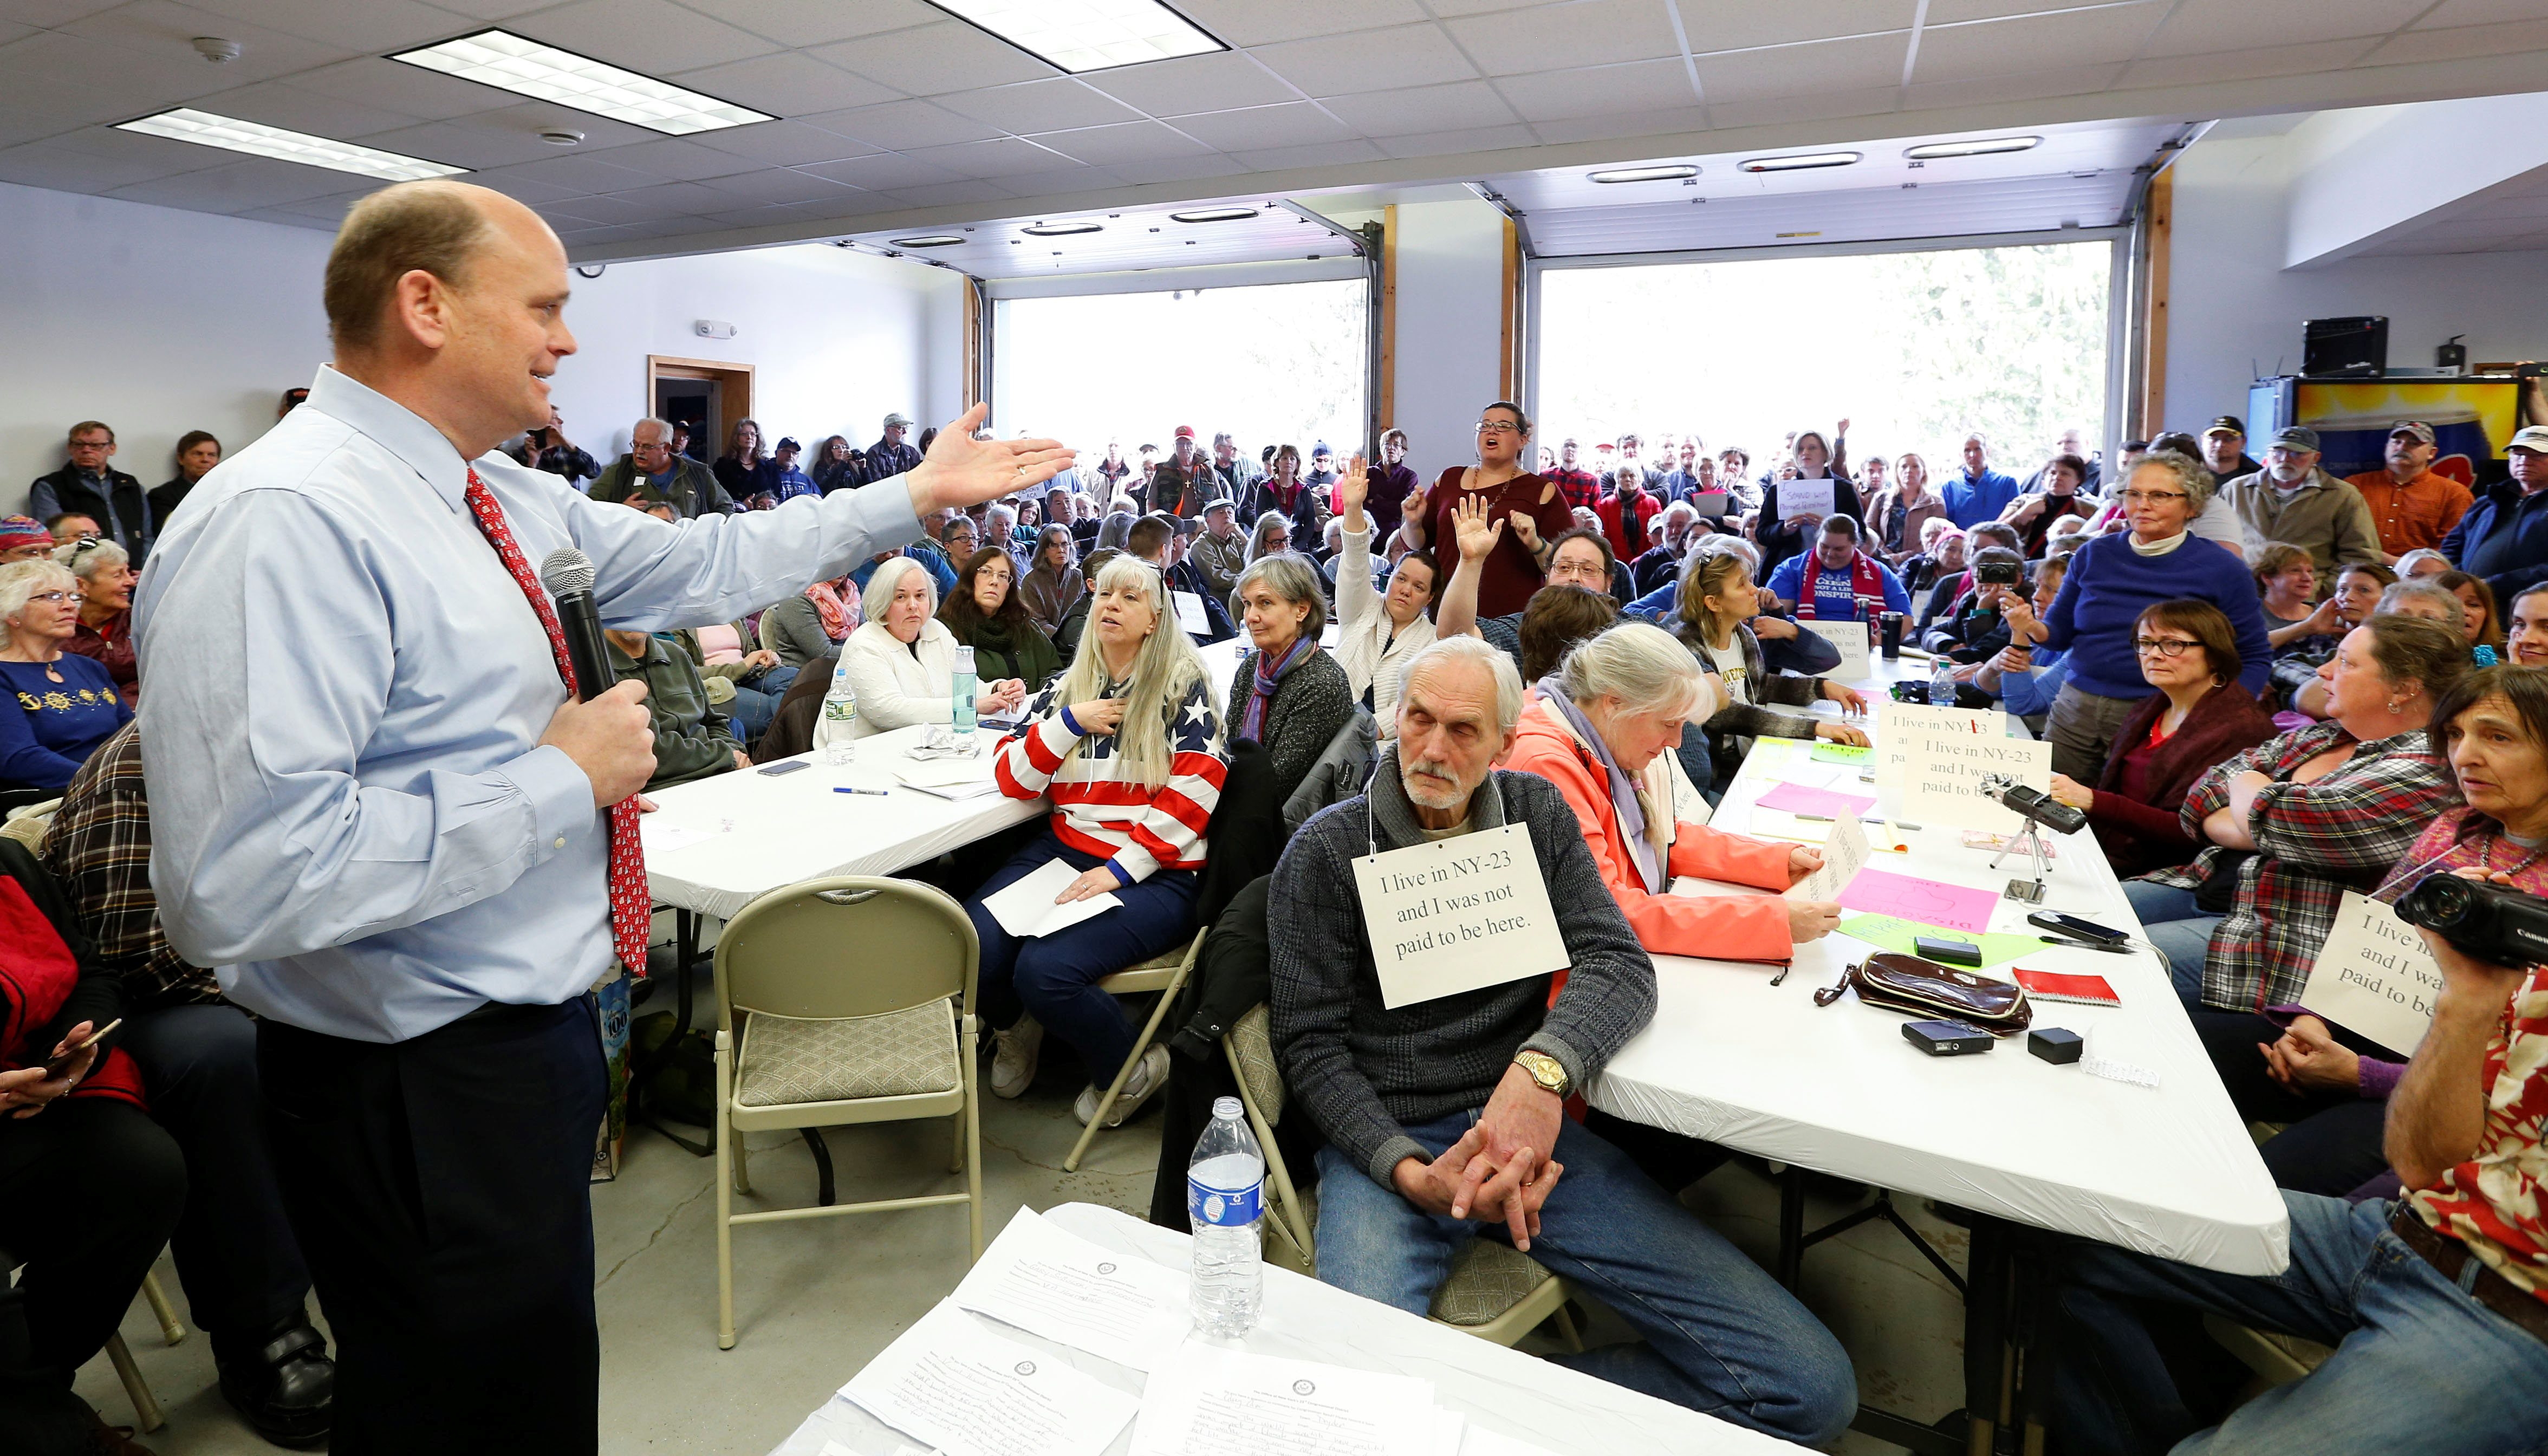 Rep. Tom Reed met with hundreds of constituents, some of them angry, Saturday at four town hall meetings, including this one at the Humphrey Fire Department in Great Valley. (Mark Mulville/Buffalo News)